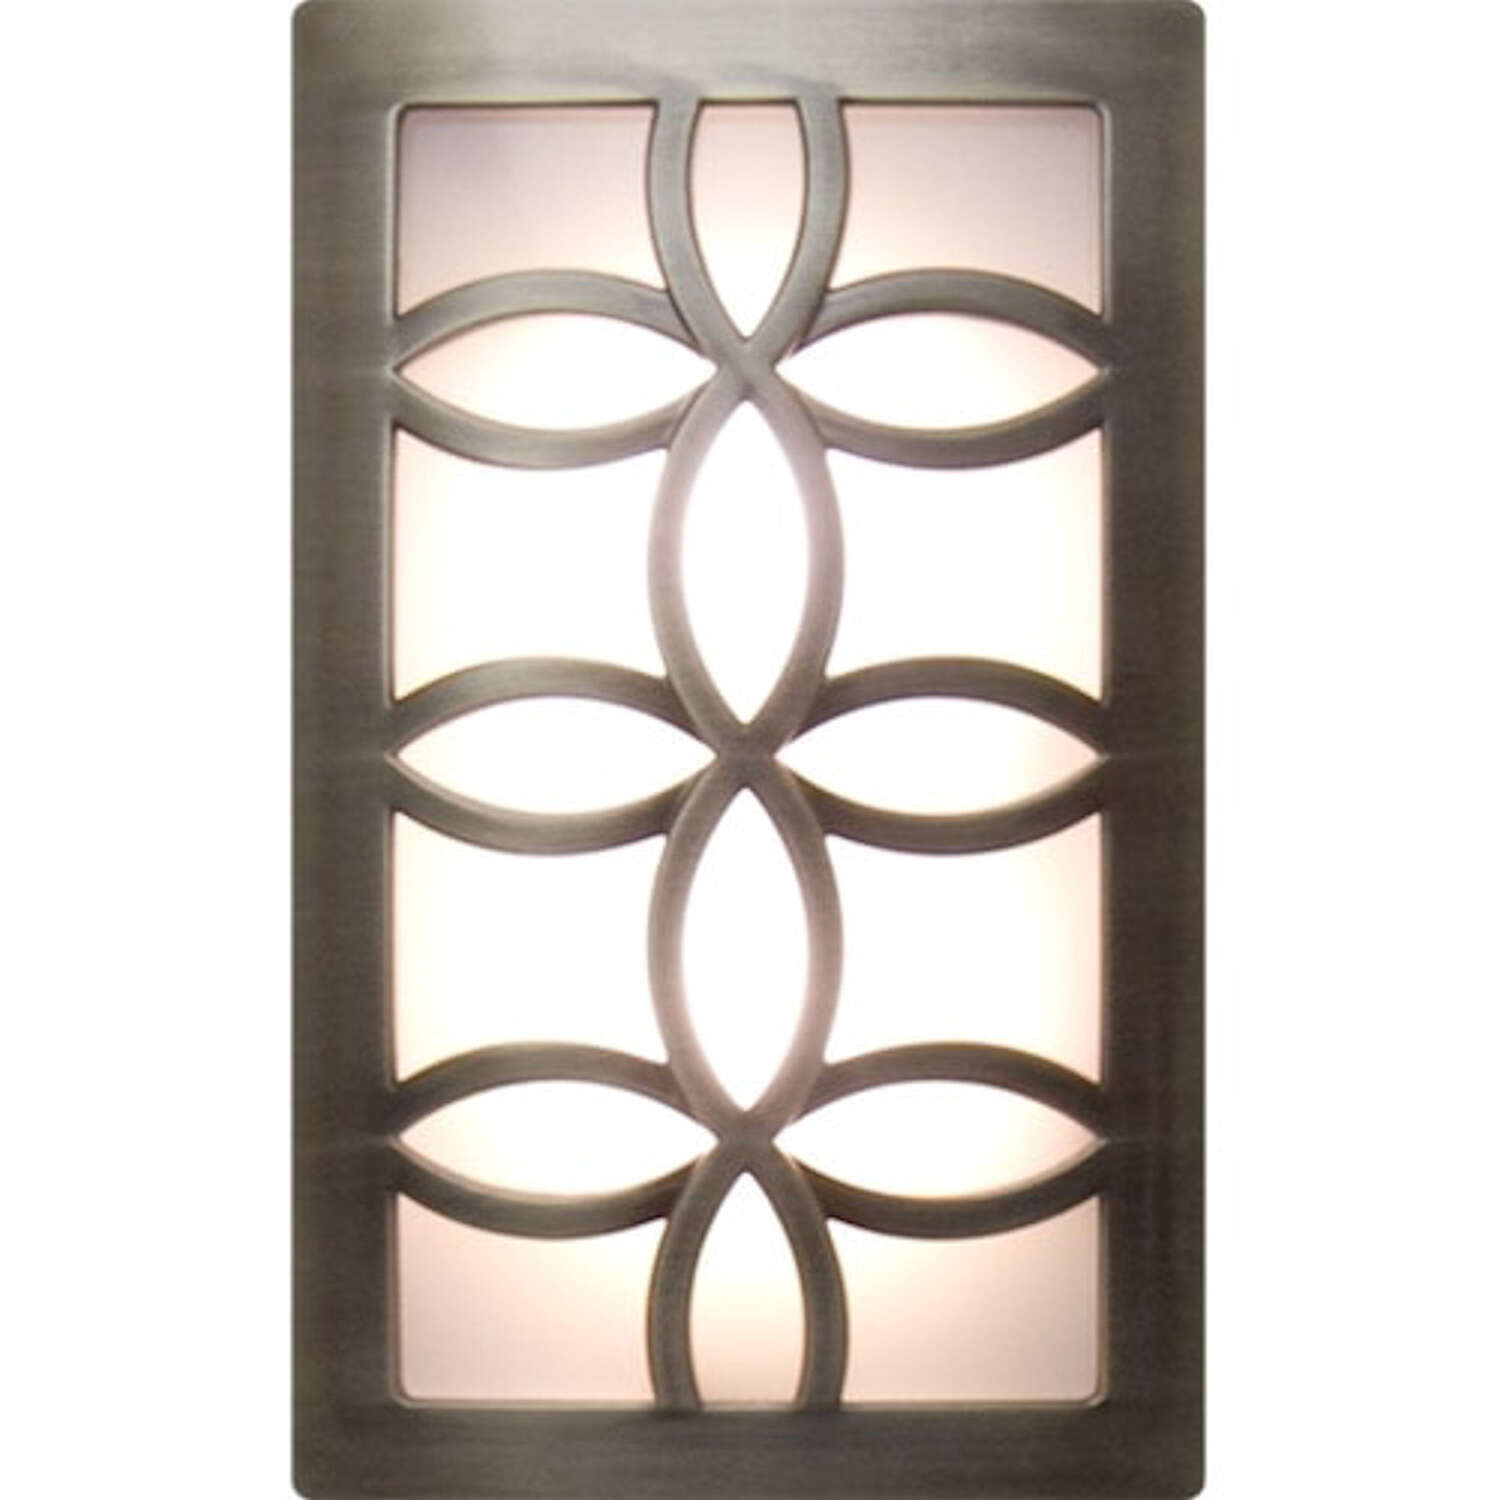 GE  CoverLite  Automatic  Plug-in  Leaf  LED  Night Light